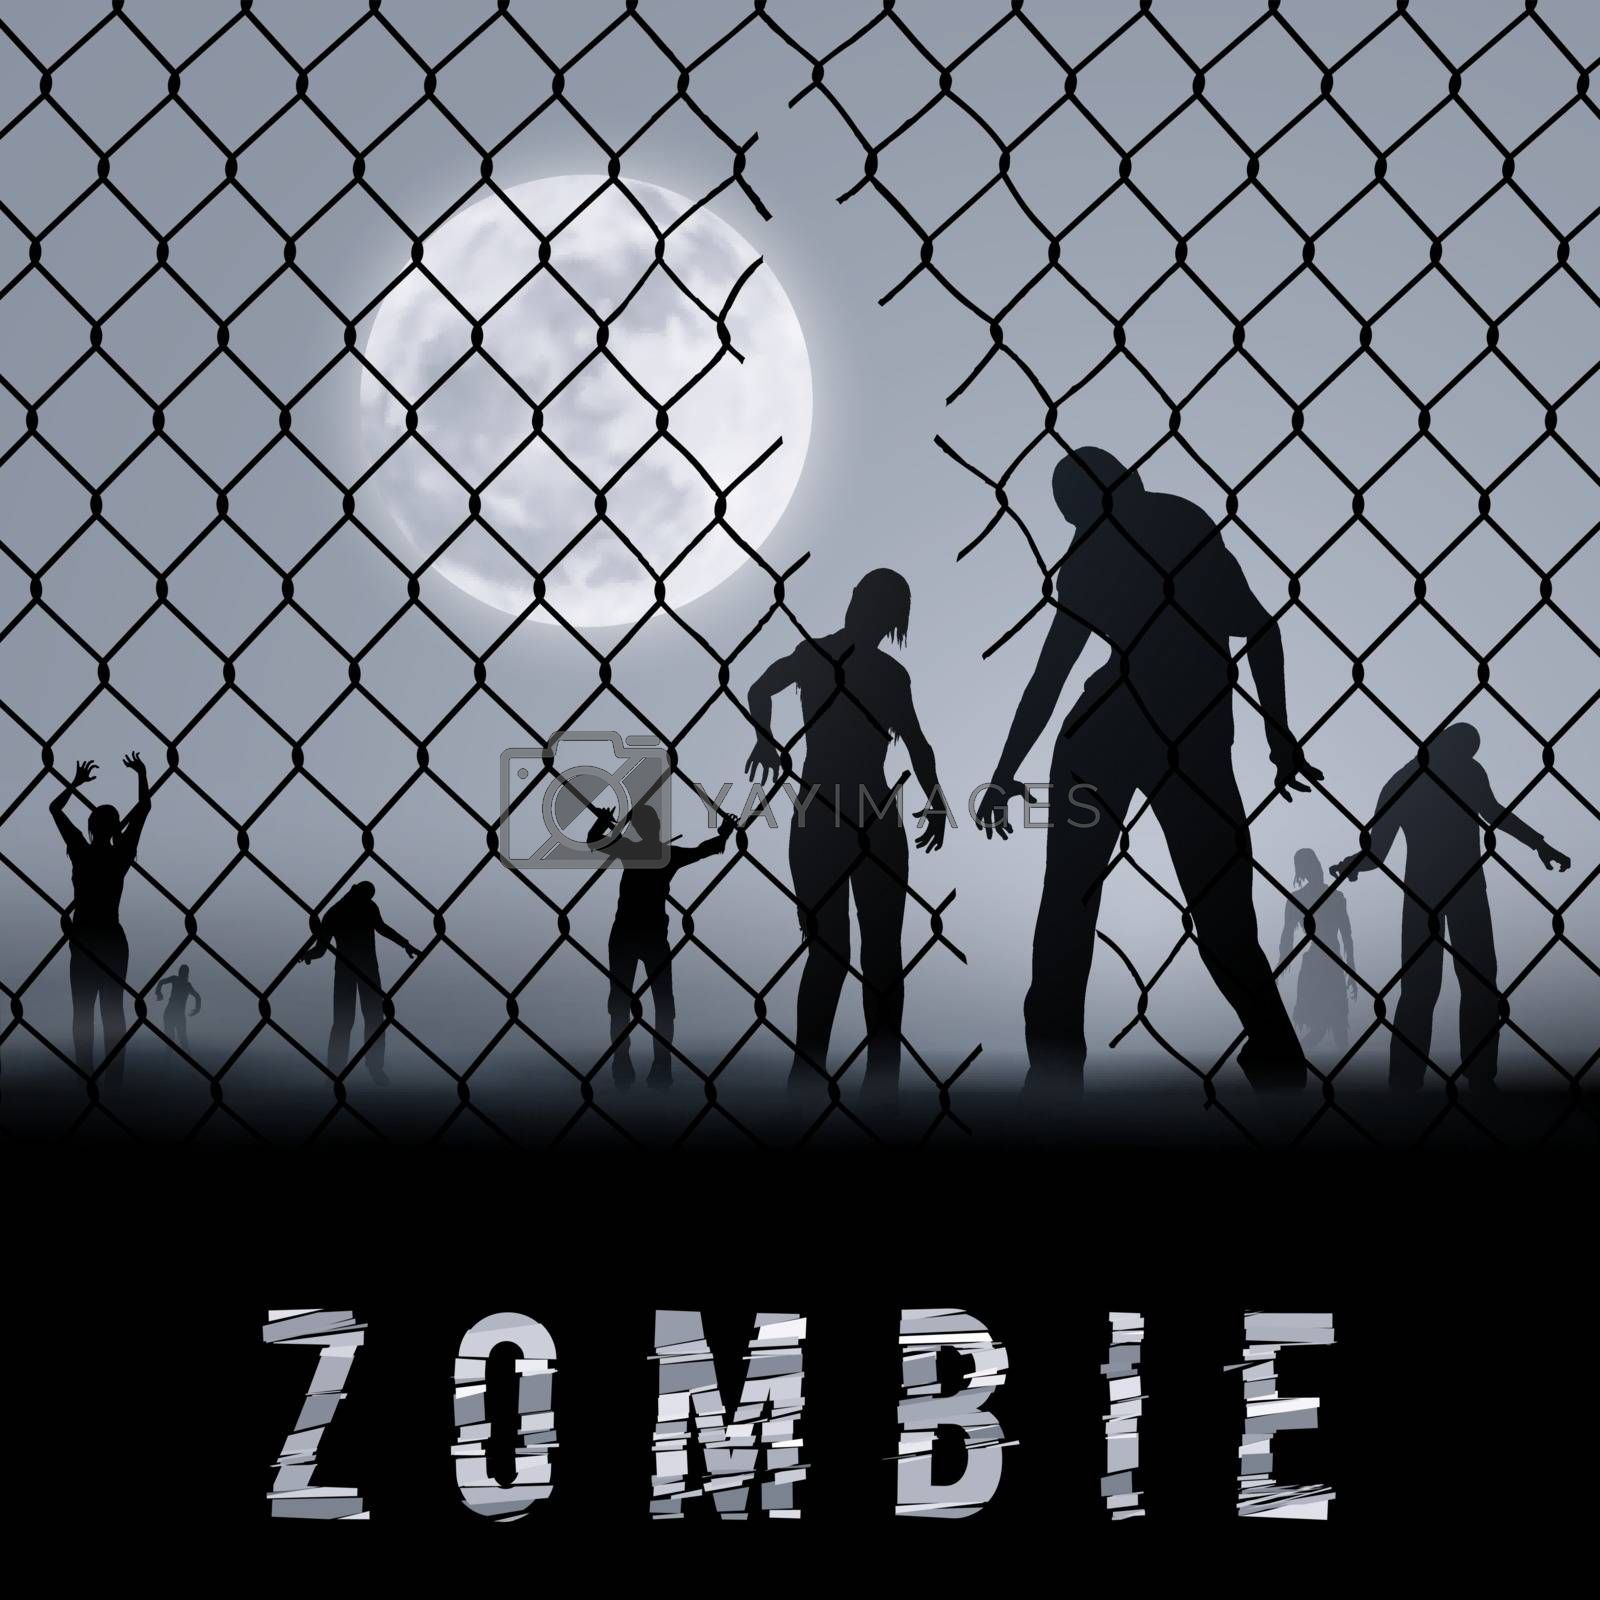 Zombie Walking at Night. Silhouettes Illustration for Halloween Poster